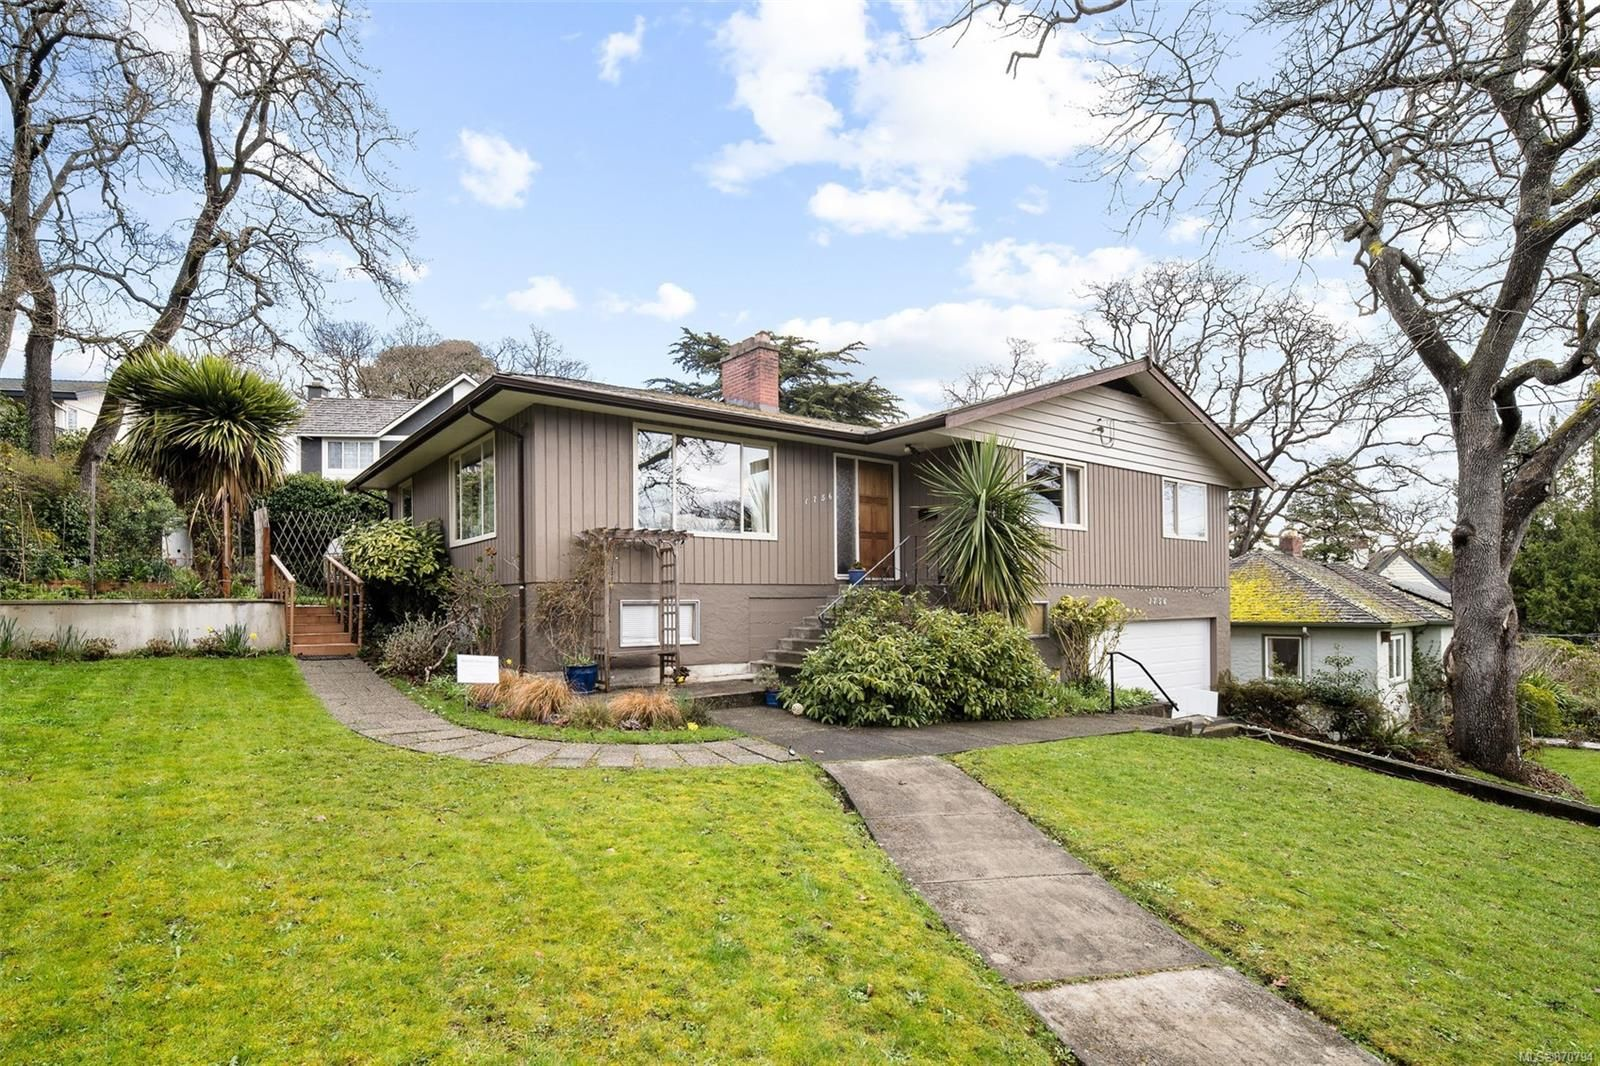 Main Photo: 1756 Gonzales Ave in : Vi Rockland House for sale (Victoria)  : MLS®# 870794